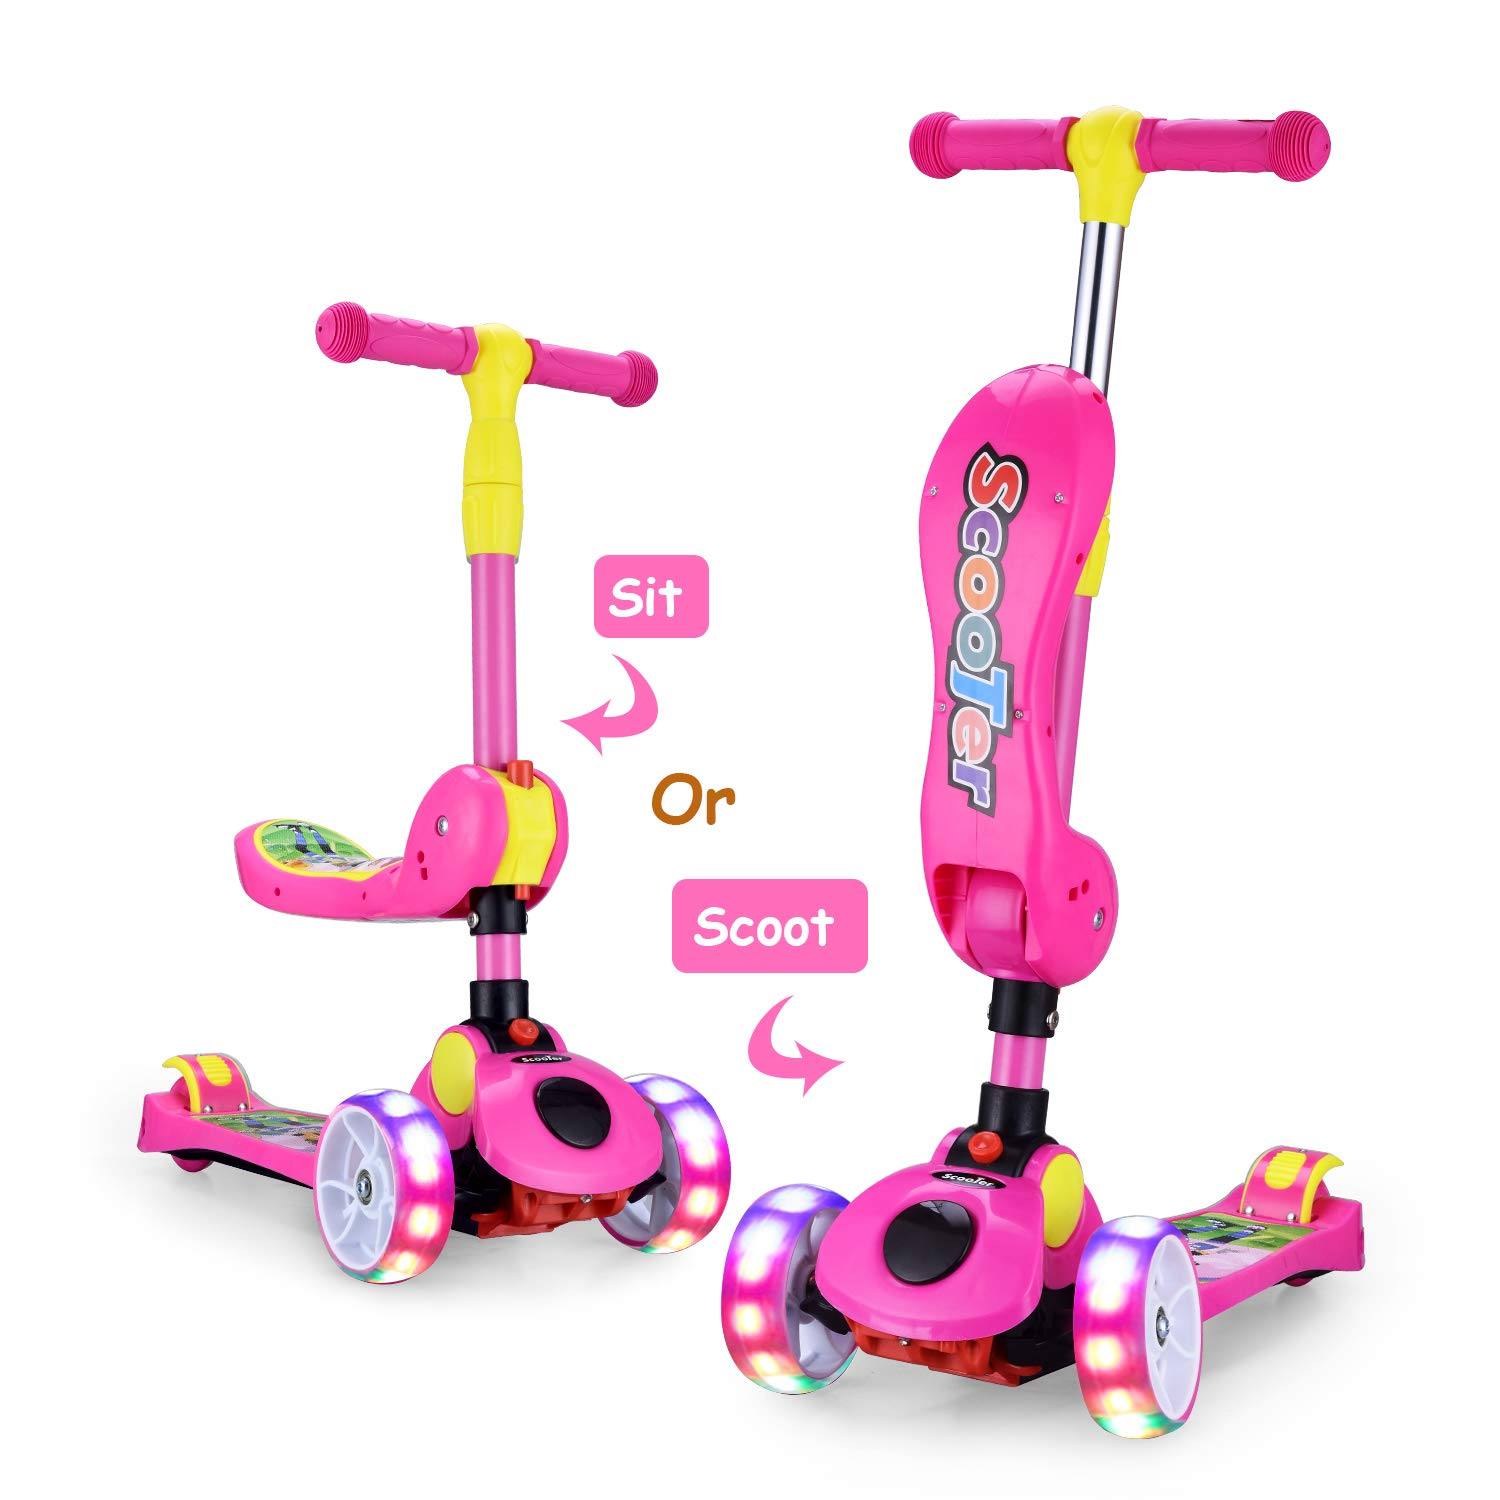 AOODIL 2-in-1 Kick Scooters for Kids Toddler 3 Wheel Scooter for Boys&Girls -Kids Scooter with LED Light Up Wheels -Adjustable HeightWide Deck for Children from 2 to 14 Year-Old